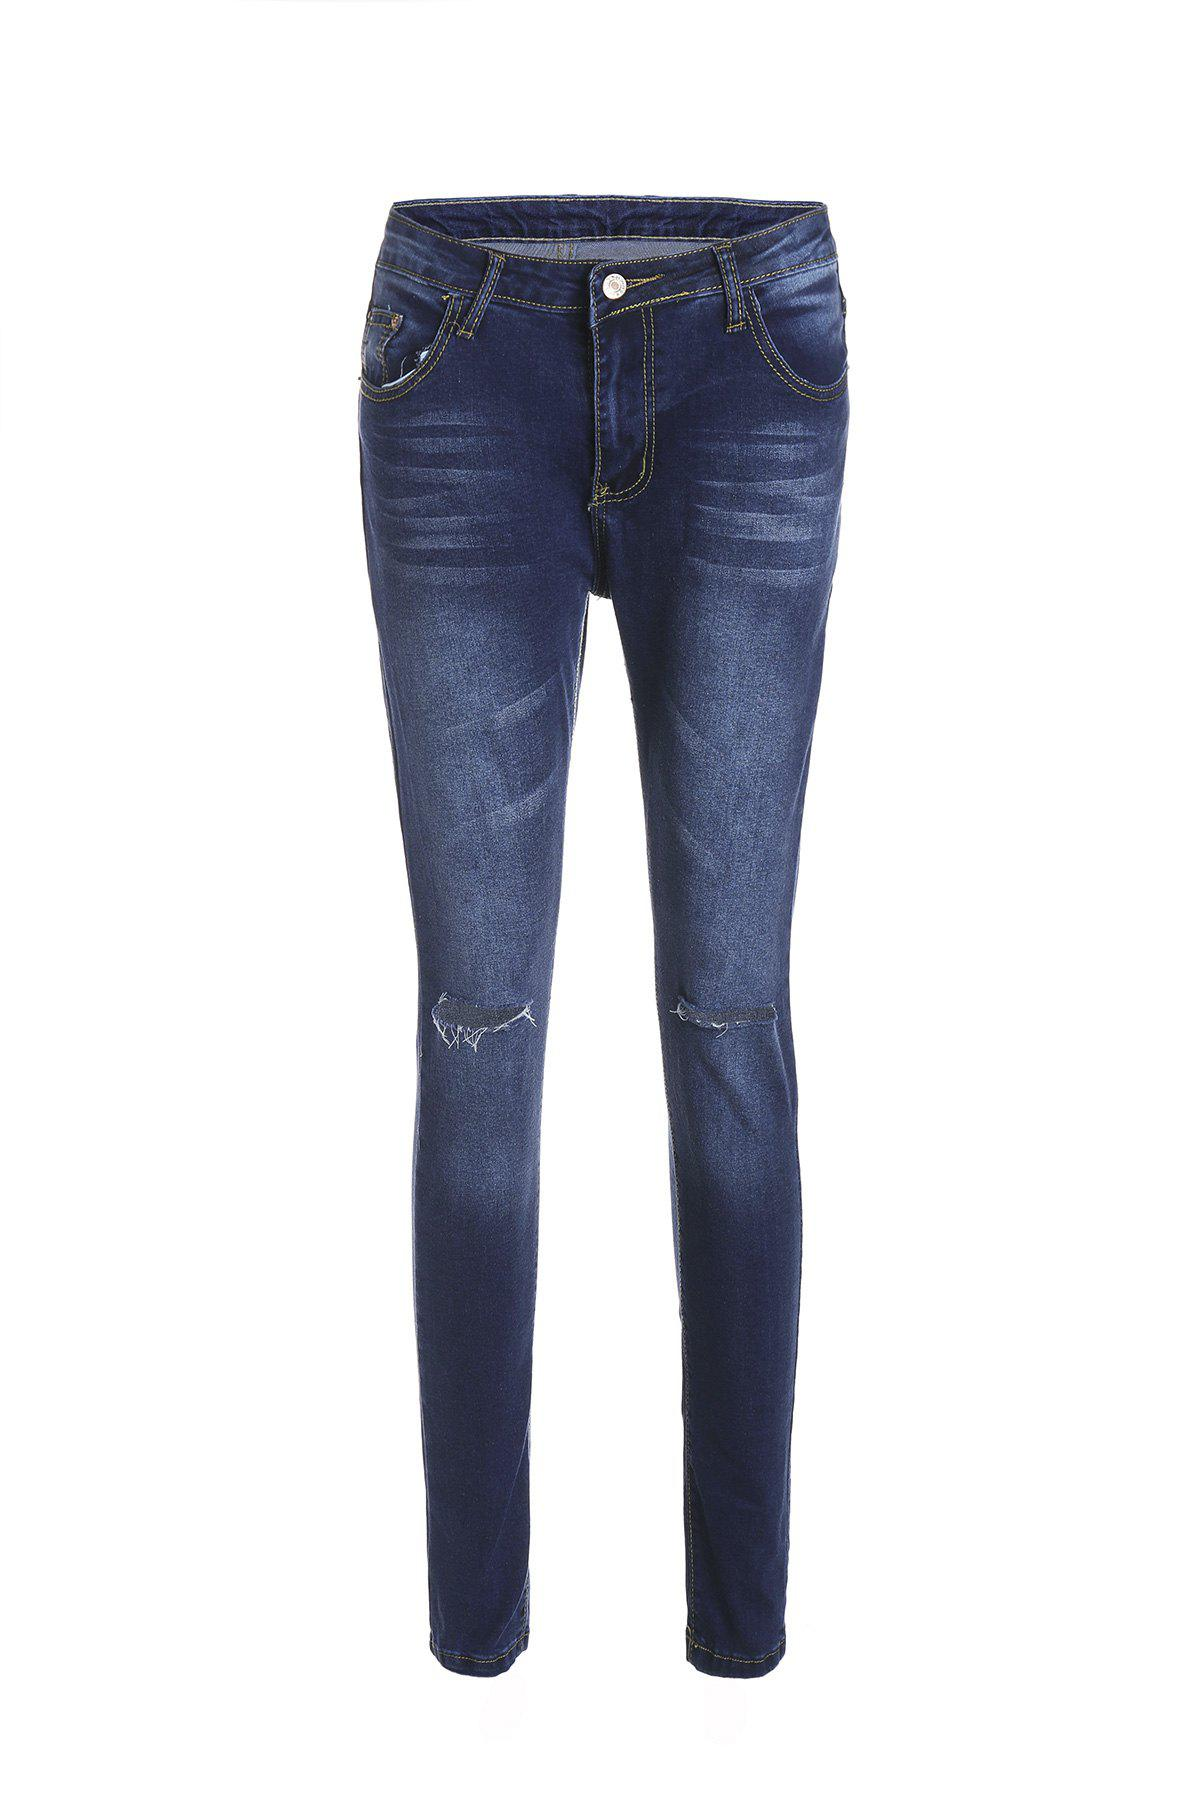 Stylish High-Waisted Skinny Ripped Women's Jeans